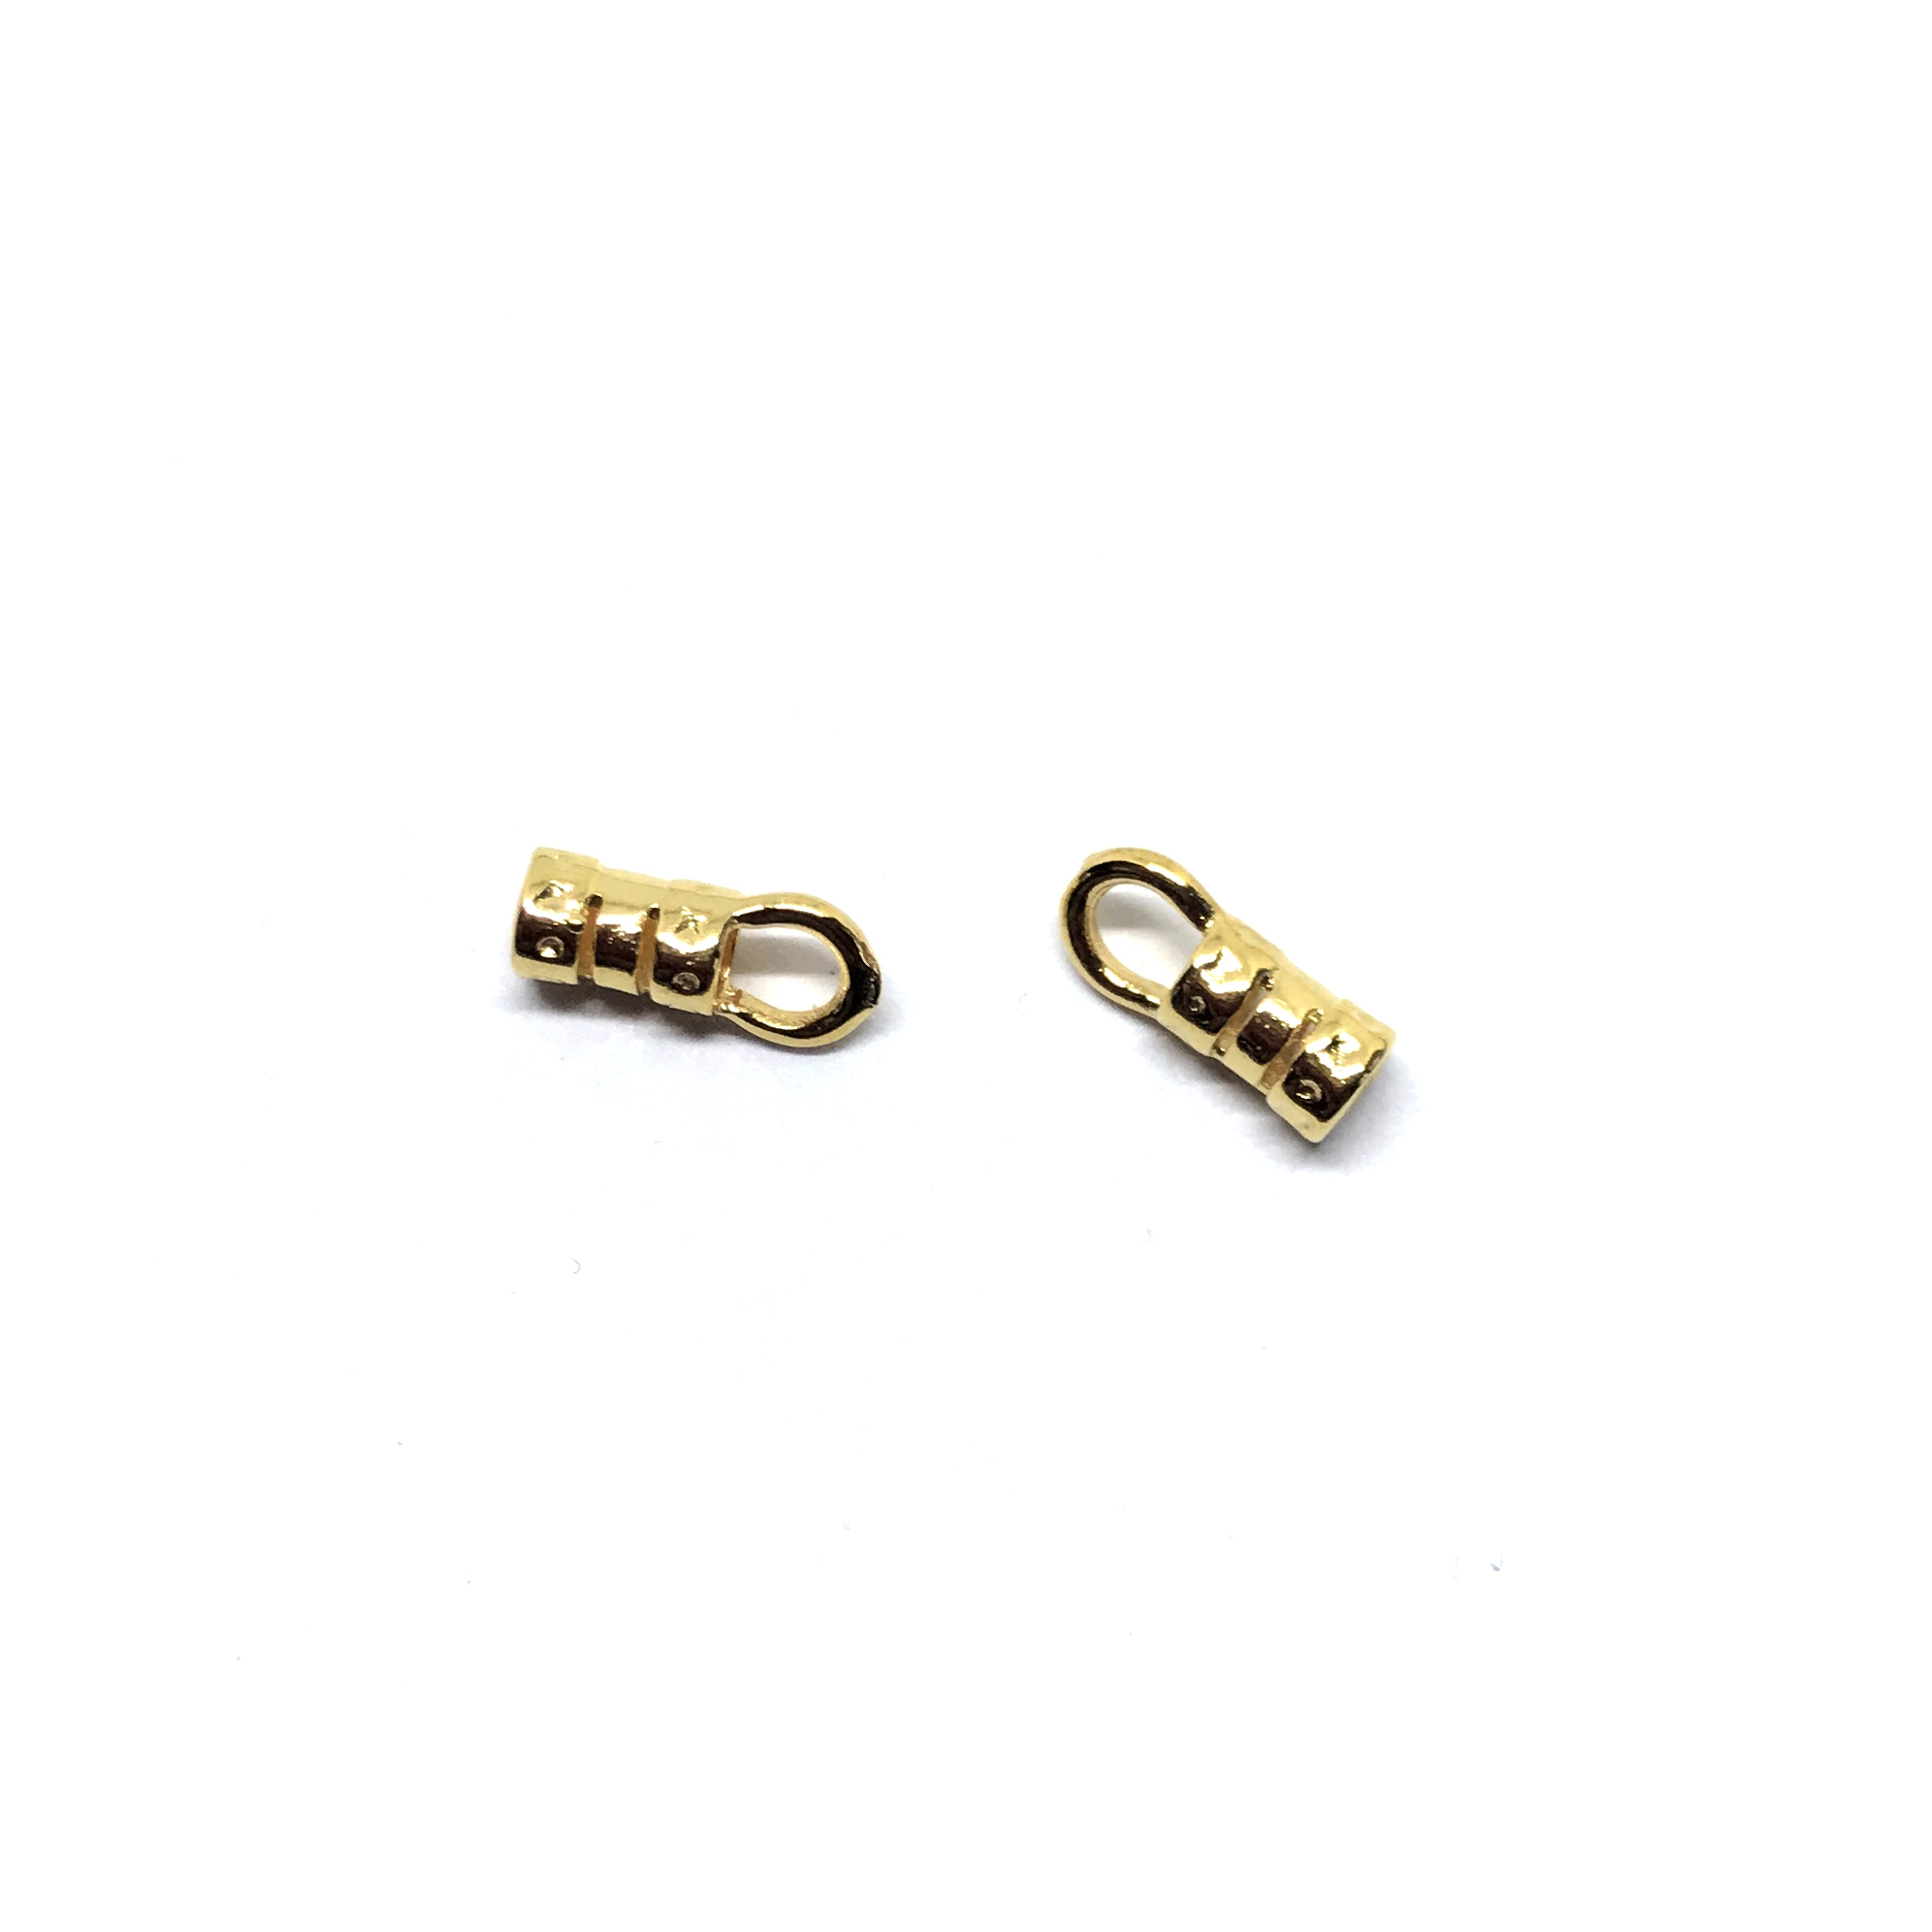 crimp end, cord end, connector, 01165, cordend, 4x10mm, goldtone, crimps